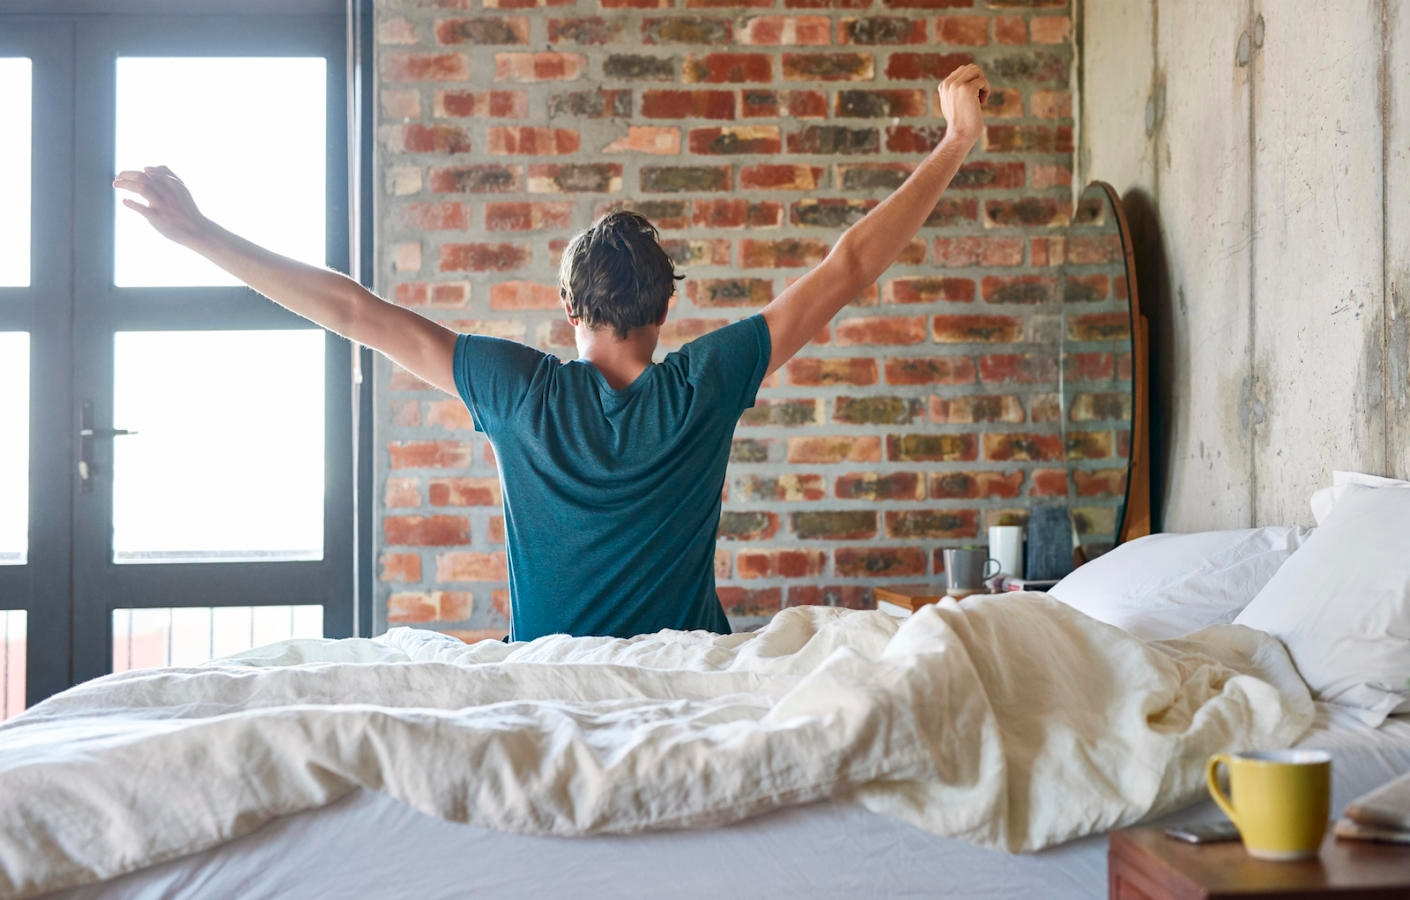 Rear view of young man stretching hands in bed